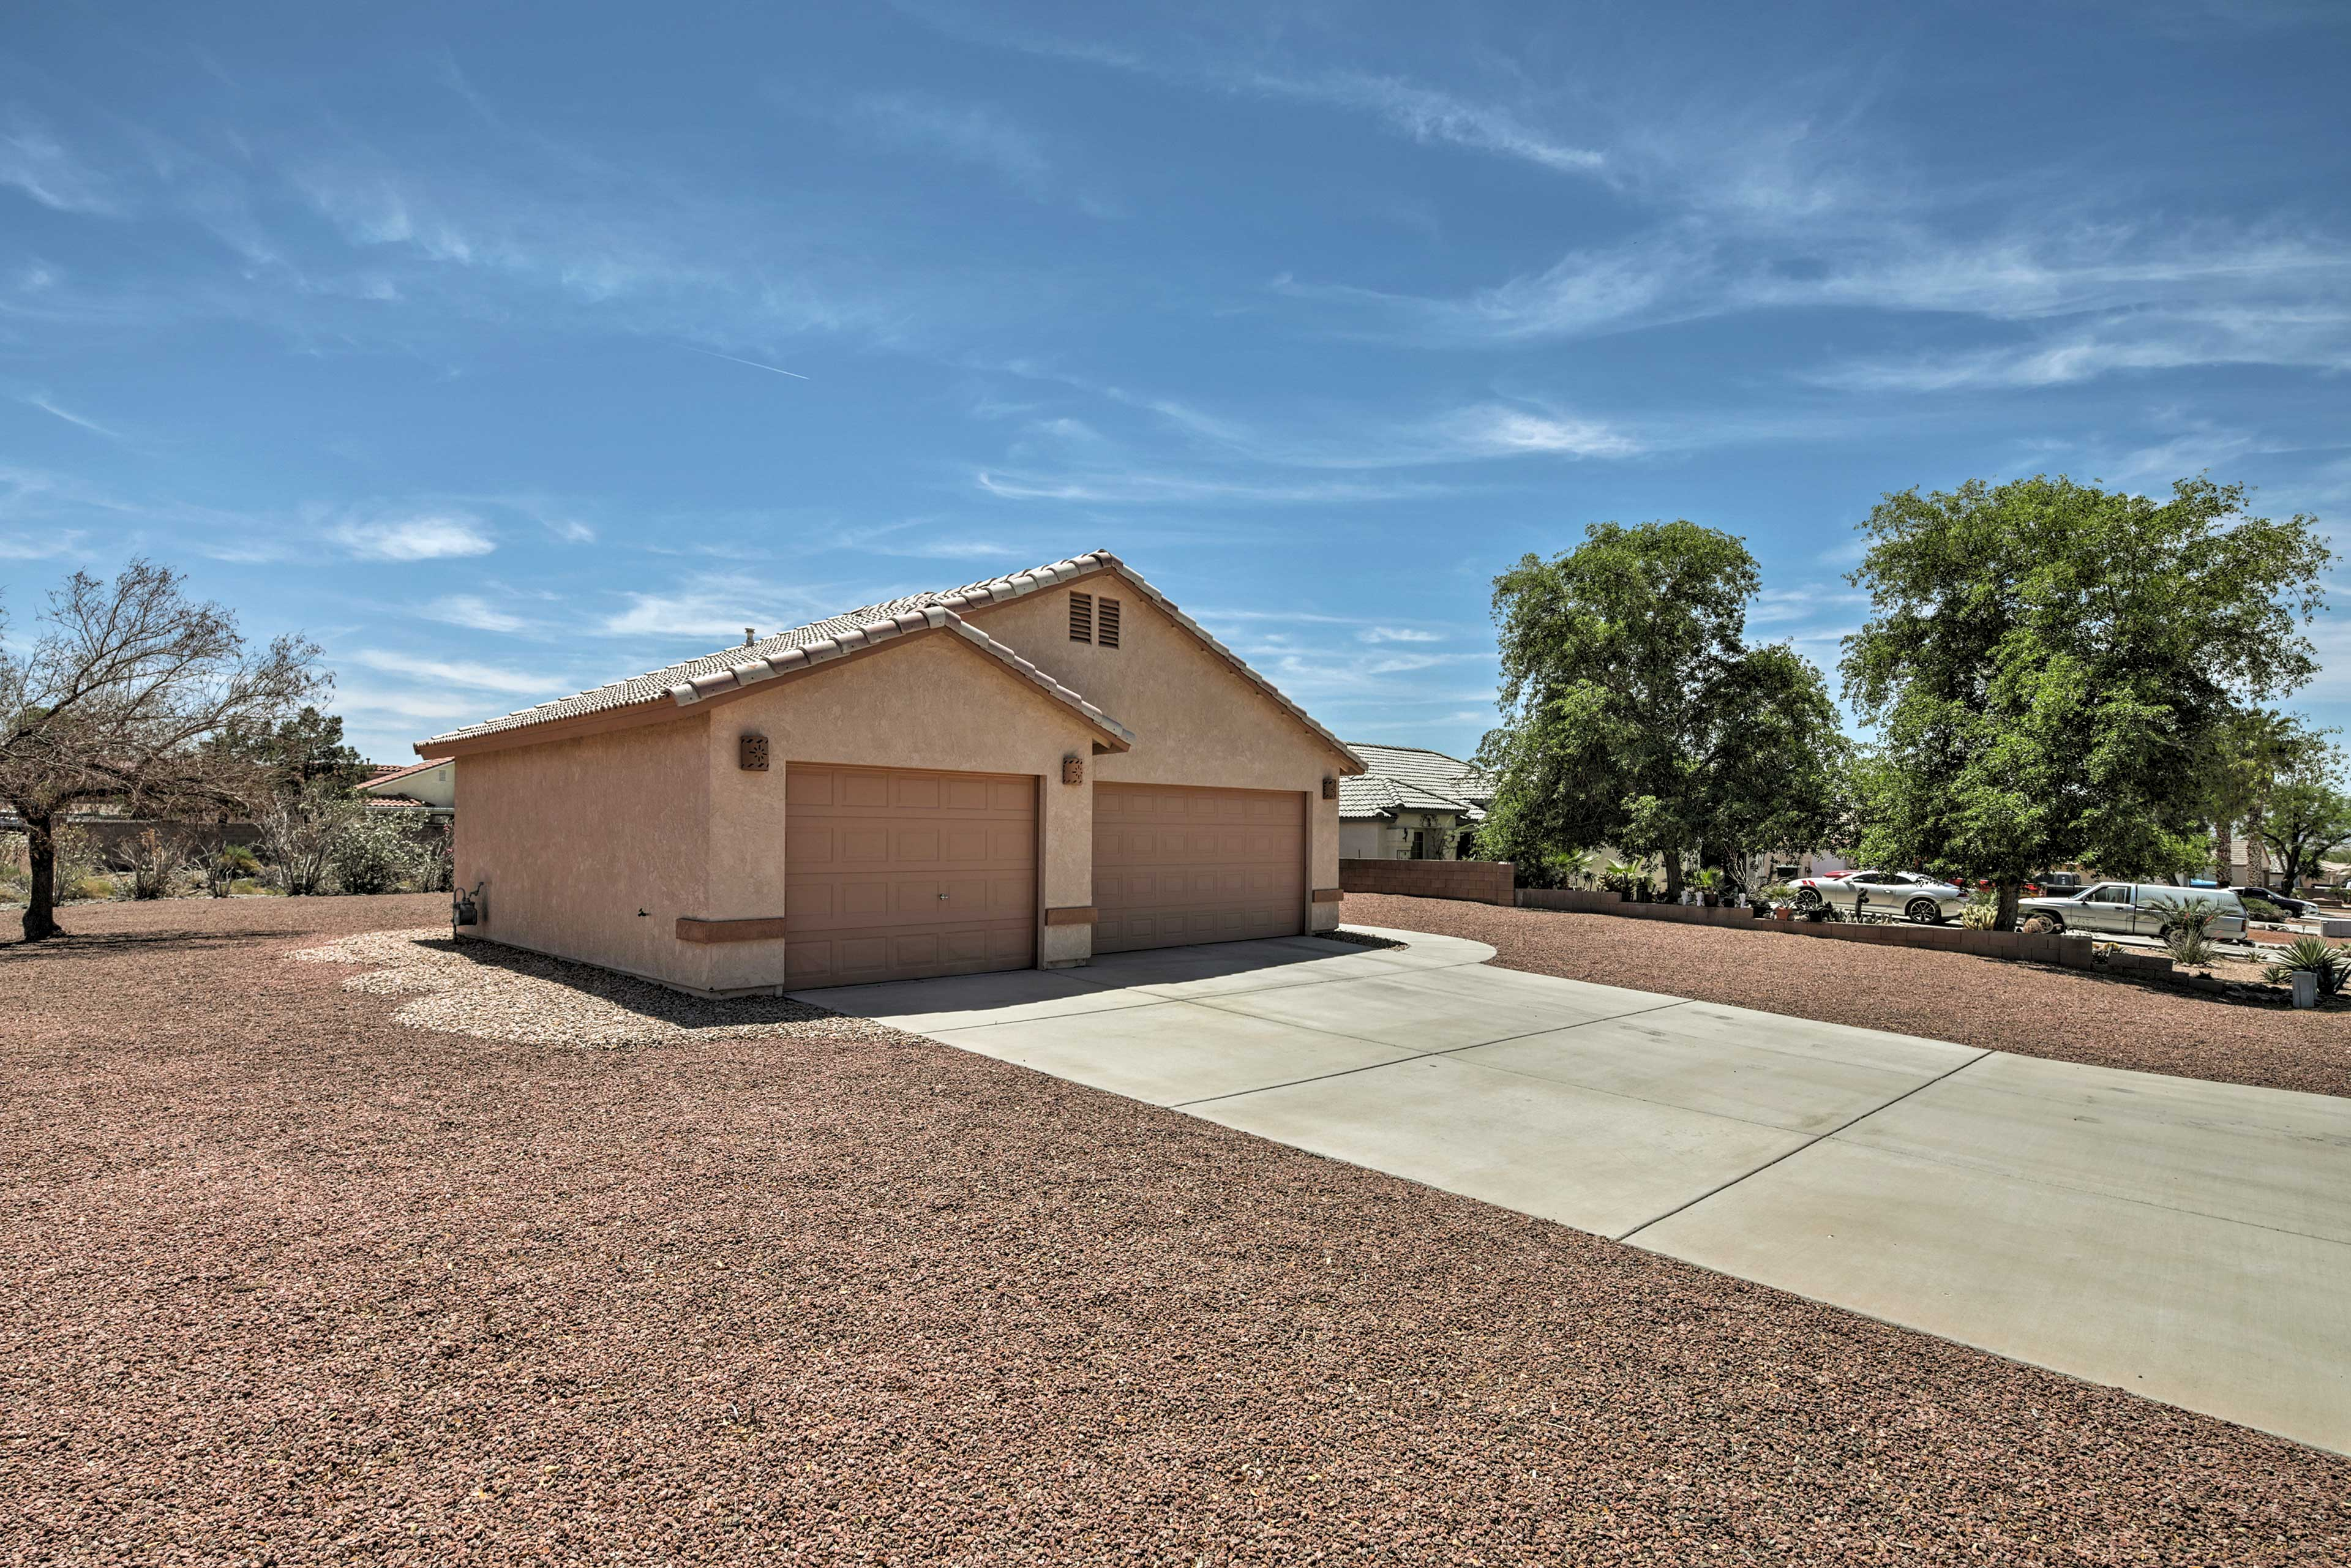 Minutes from rafting and fishing, this home is great for outdoor adventurers.